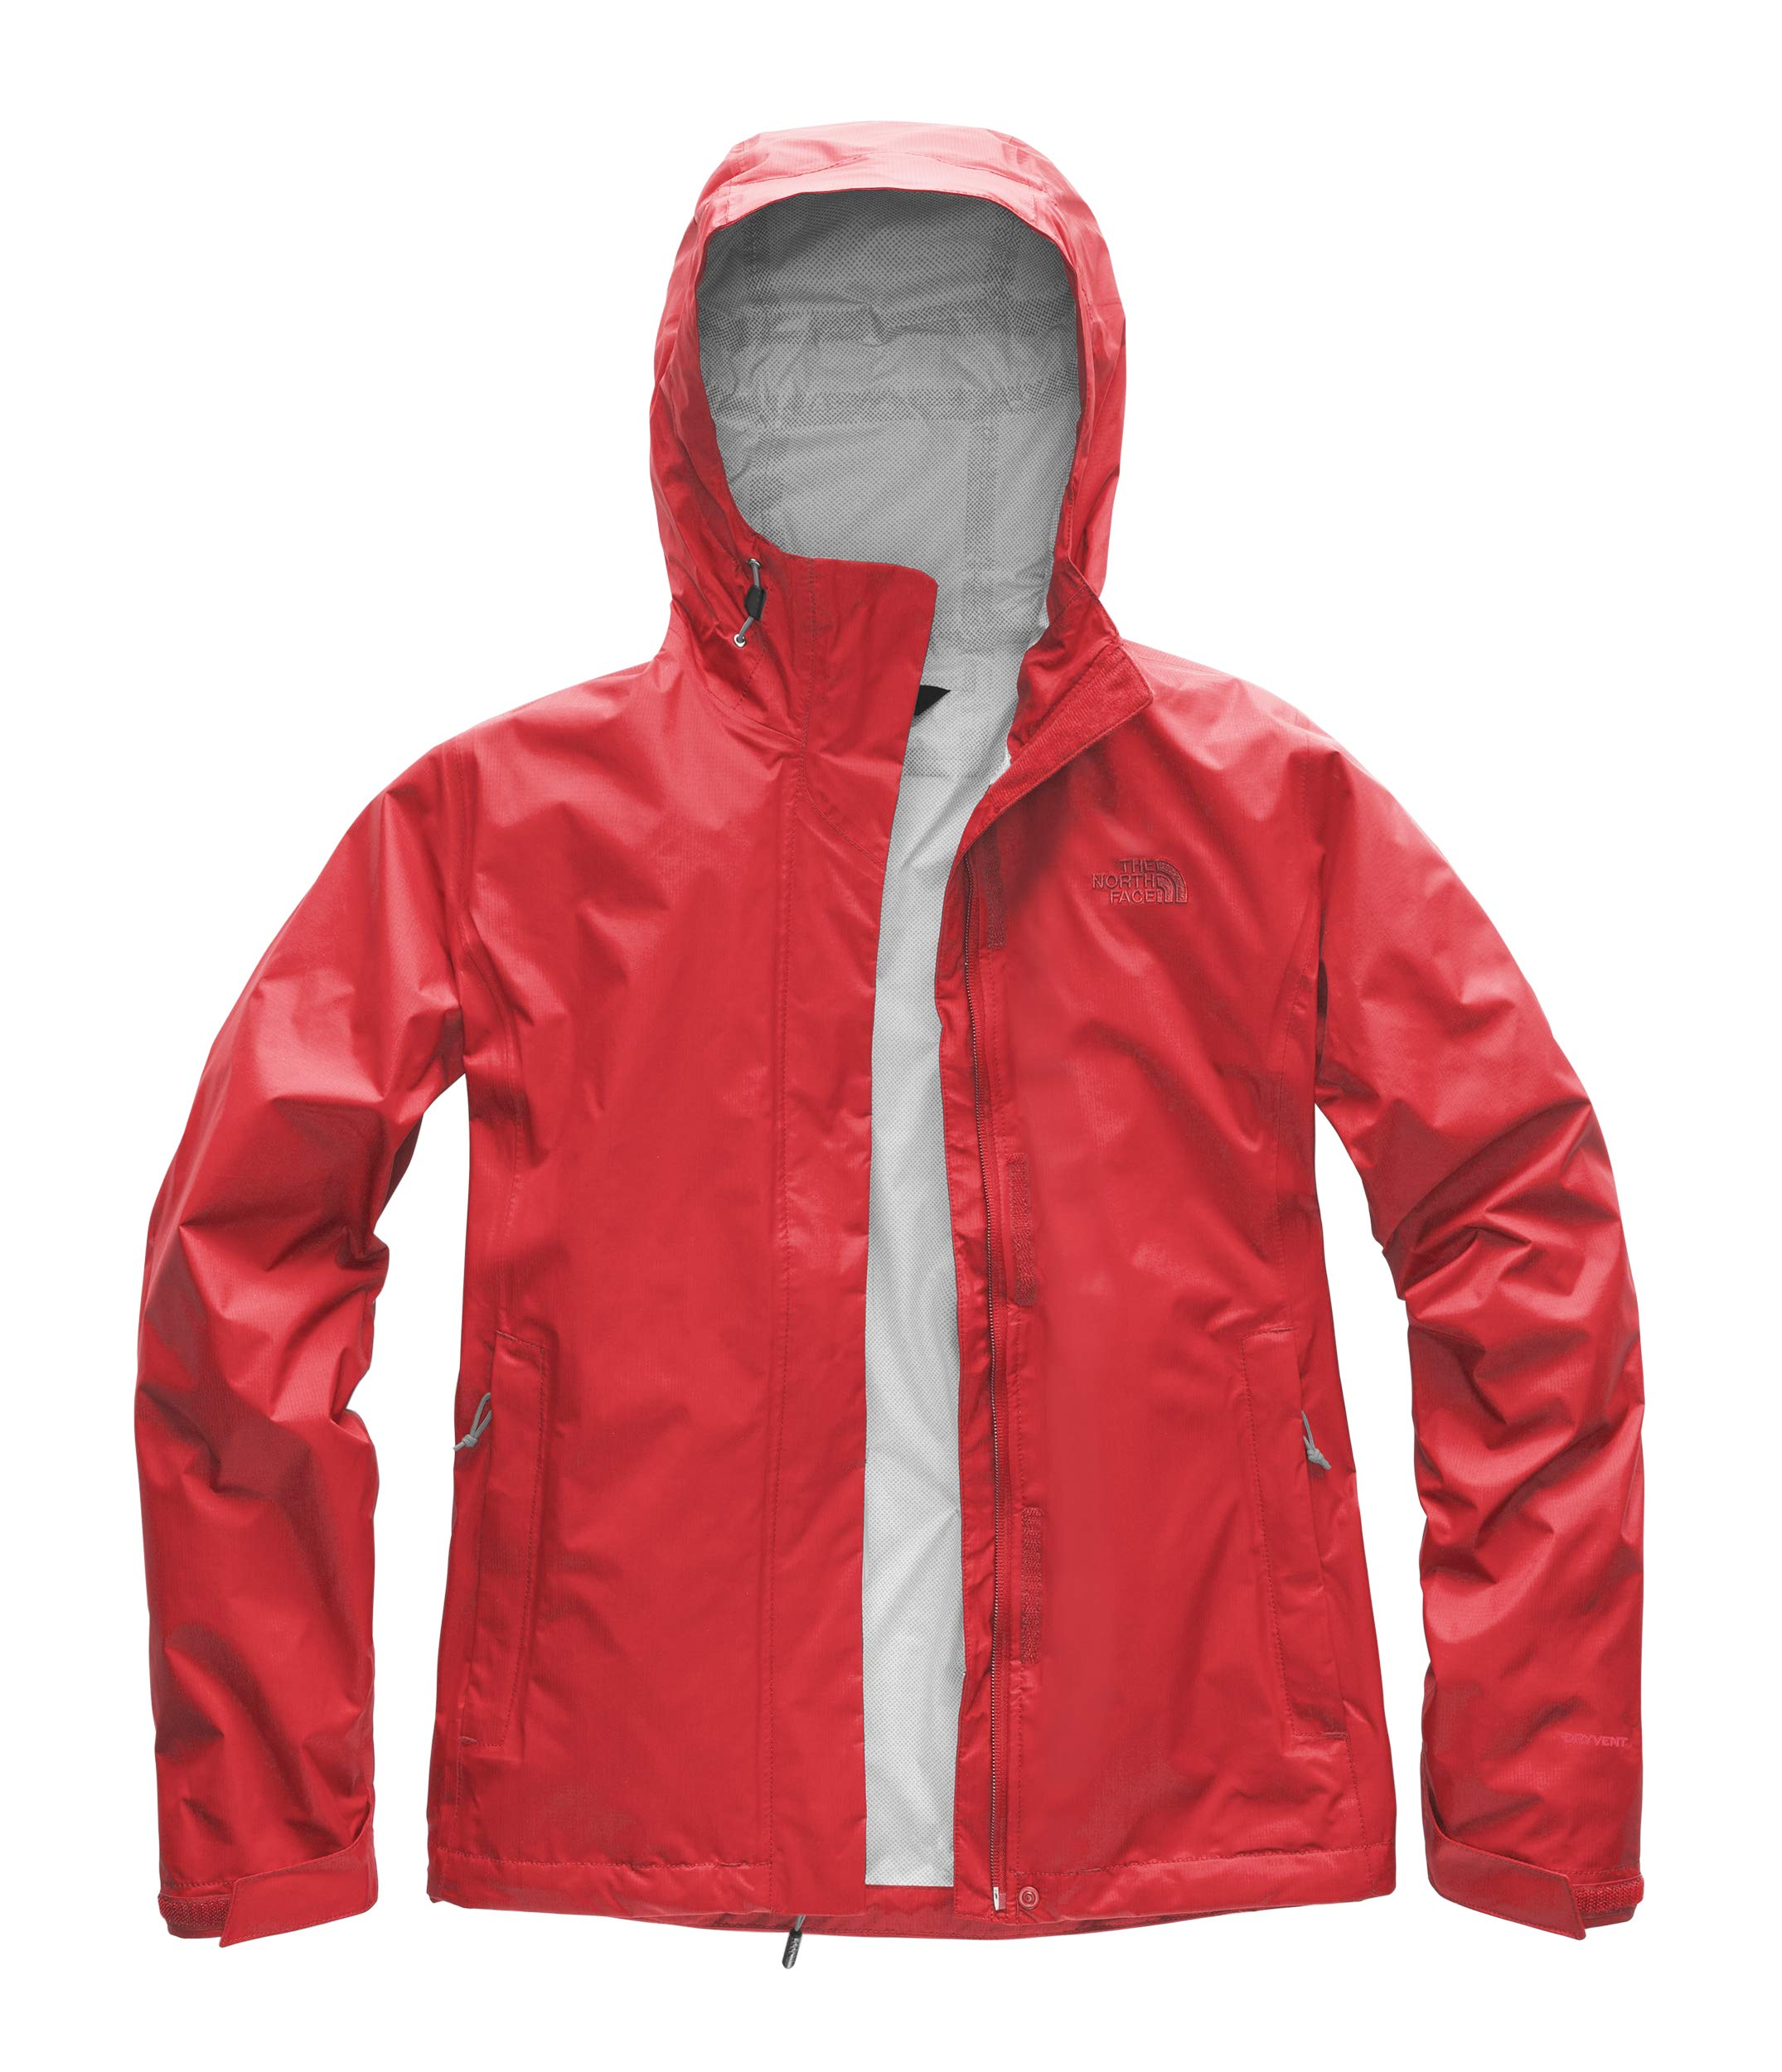 The North Face Women's Venture 2 Jacket - Juicy Red - XS by The North Face